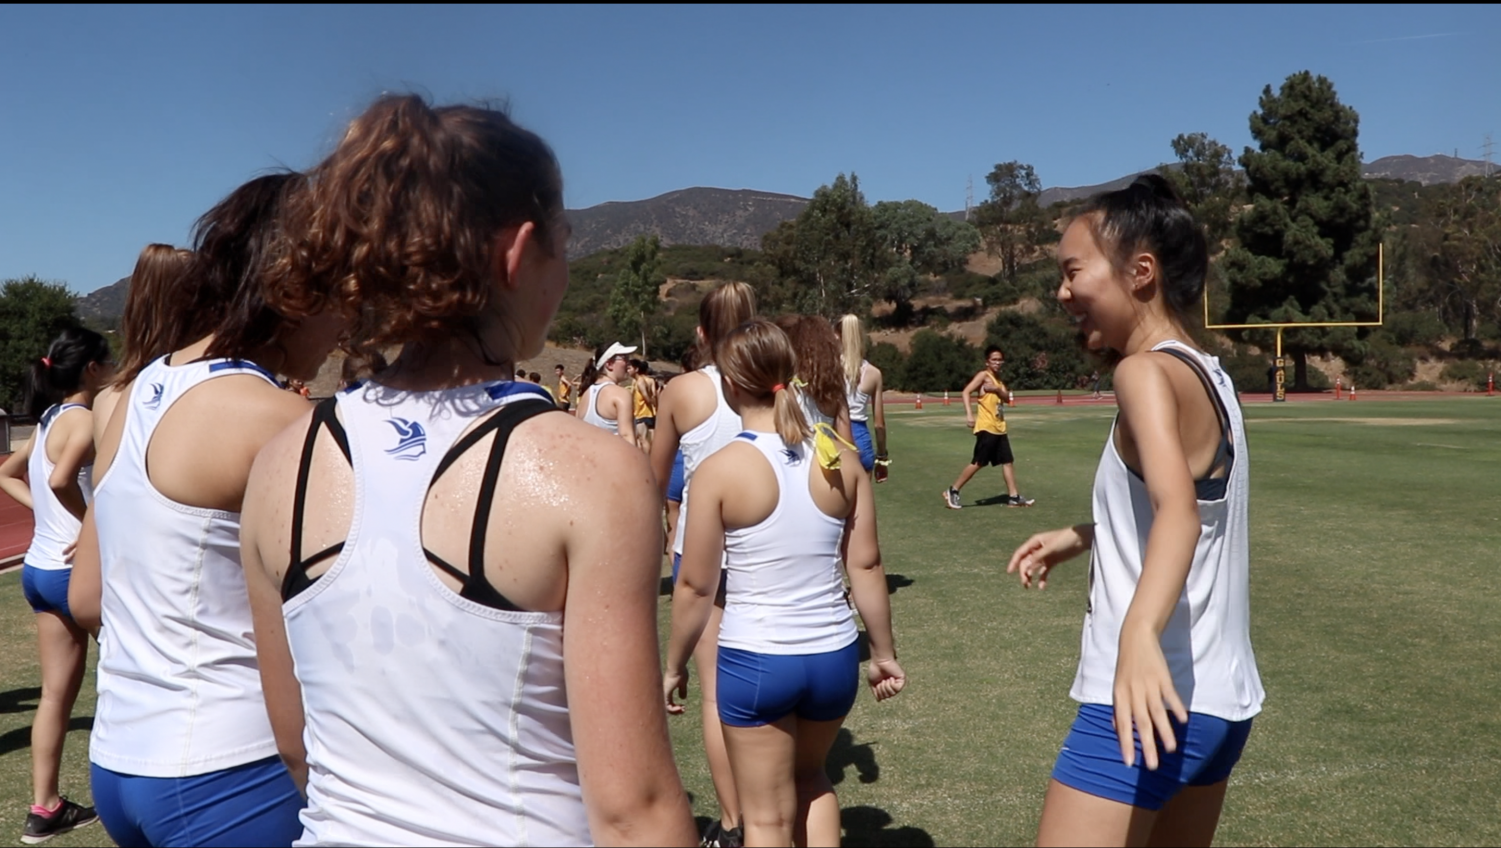 VWS varsity cross country runners make their ways towards the starting line.